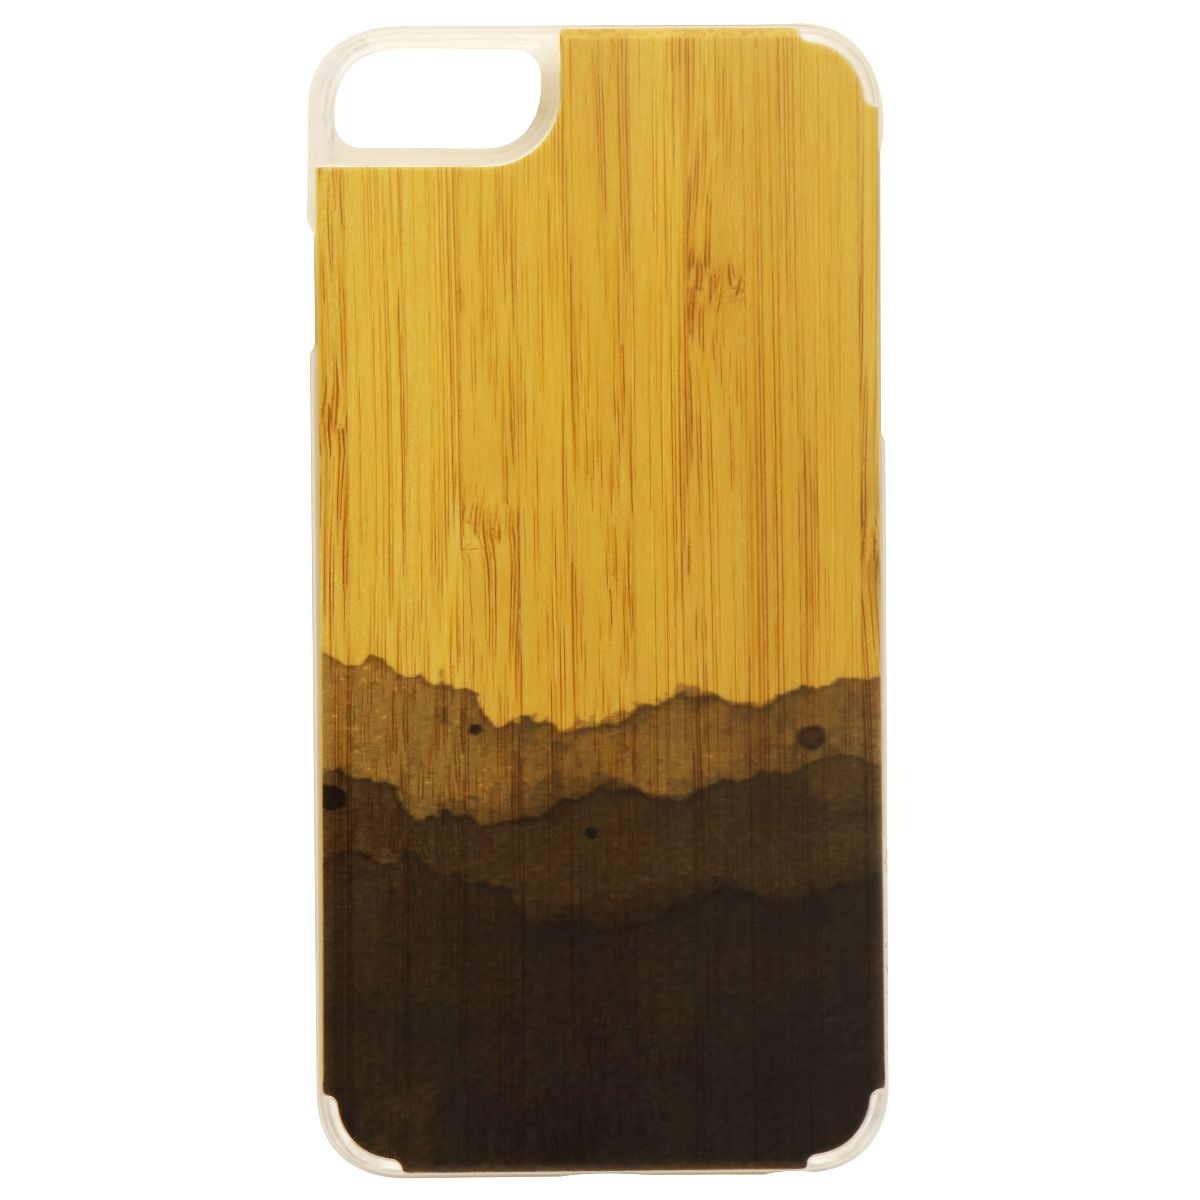 Recover Genuine Hardshell Wood Case for iPhone 6s Plus/6 Plus - Bamboo / Frost